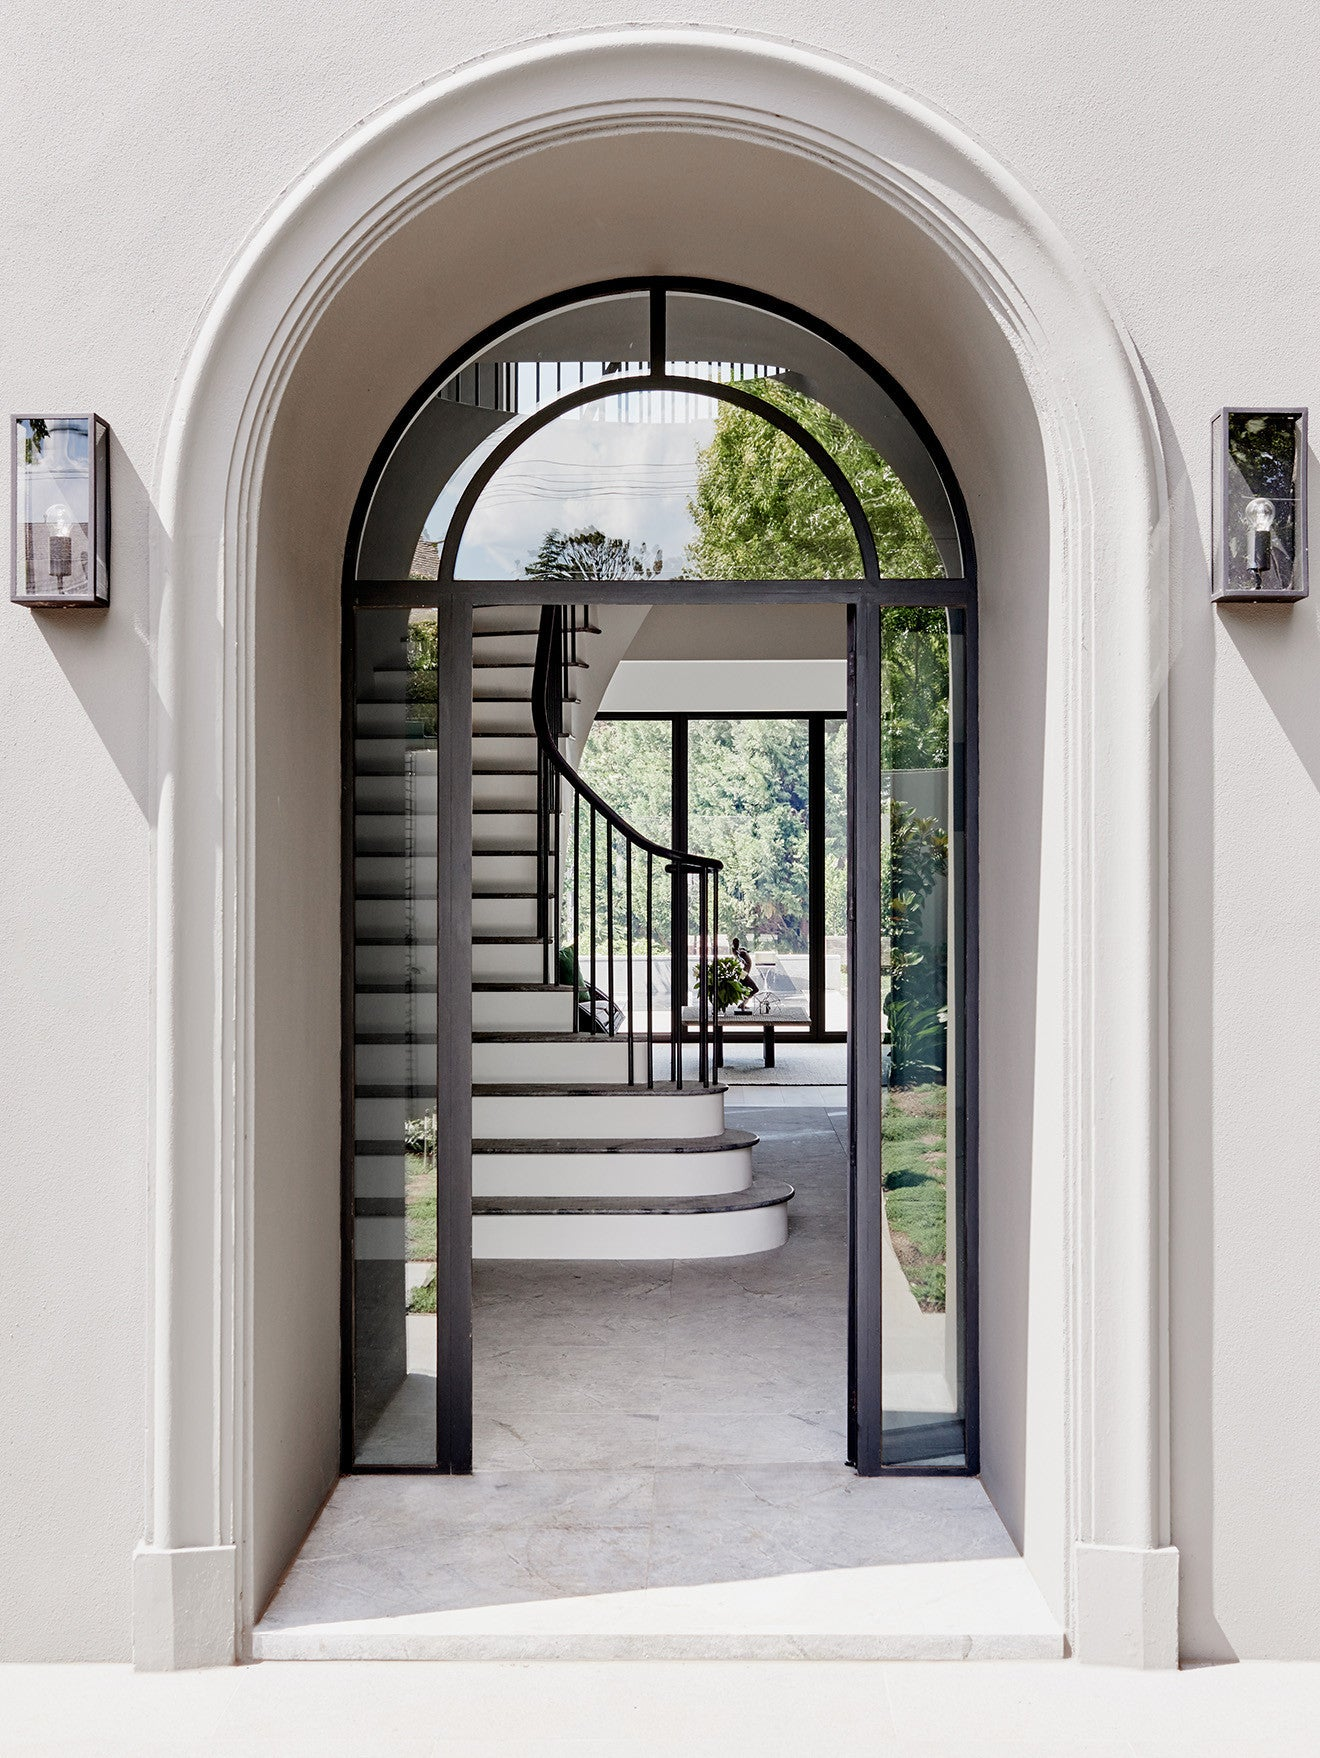 Robson Toorak luxury interior design Toorak 2 house arched entrance